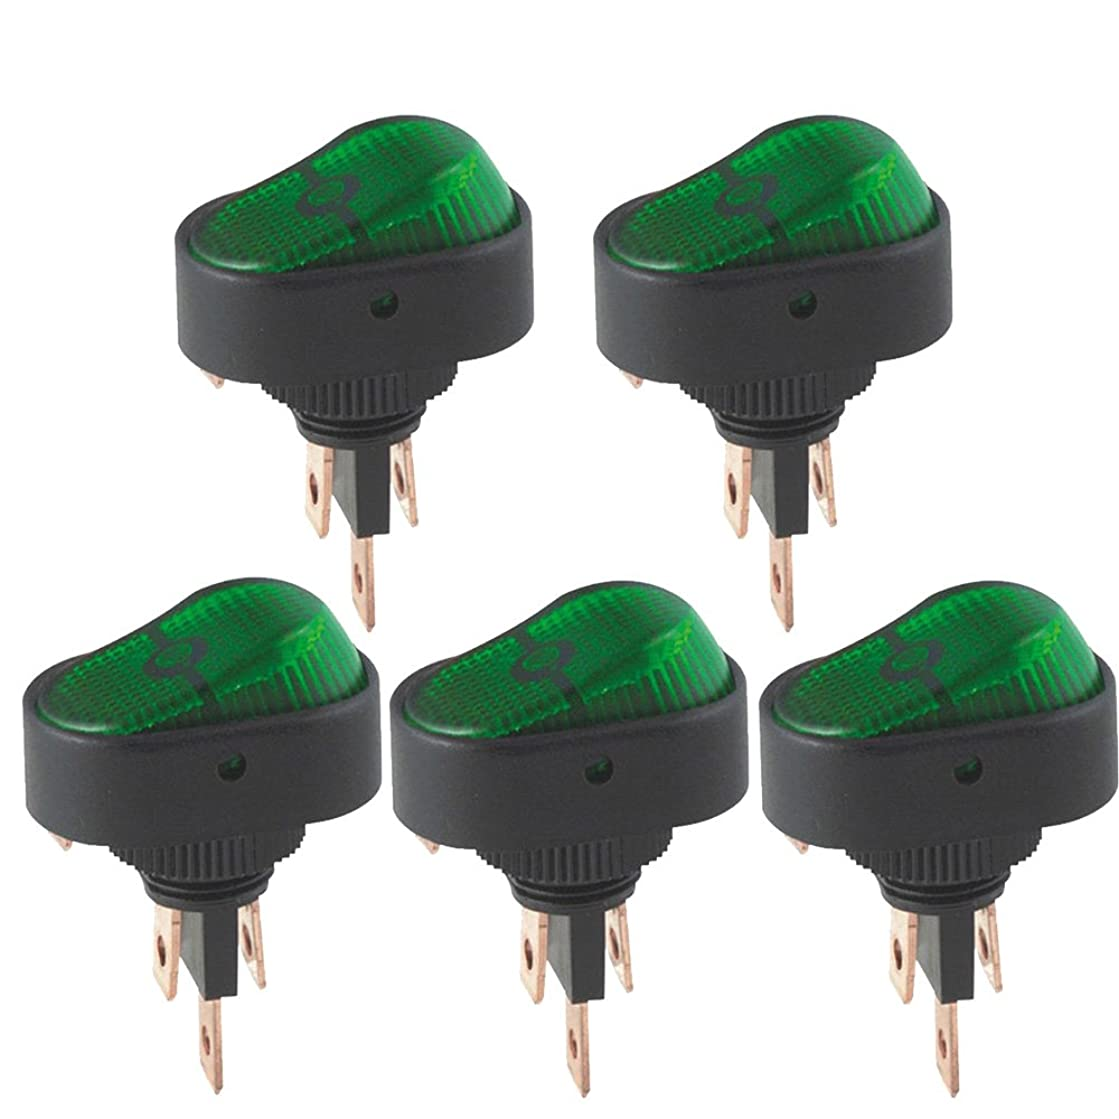 ESUPPORT 12V 30A Car Auto Heavy Duty Green LED Light Push Button Rocker Toggle Switch On Off Spst 3 Pin Control Pack of 5